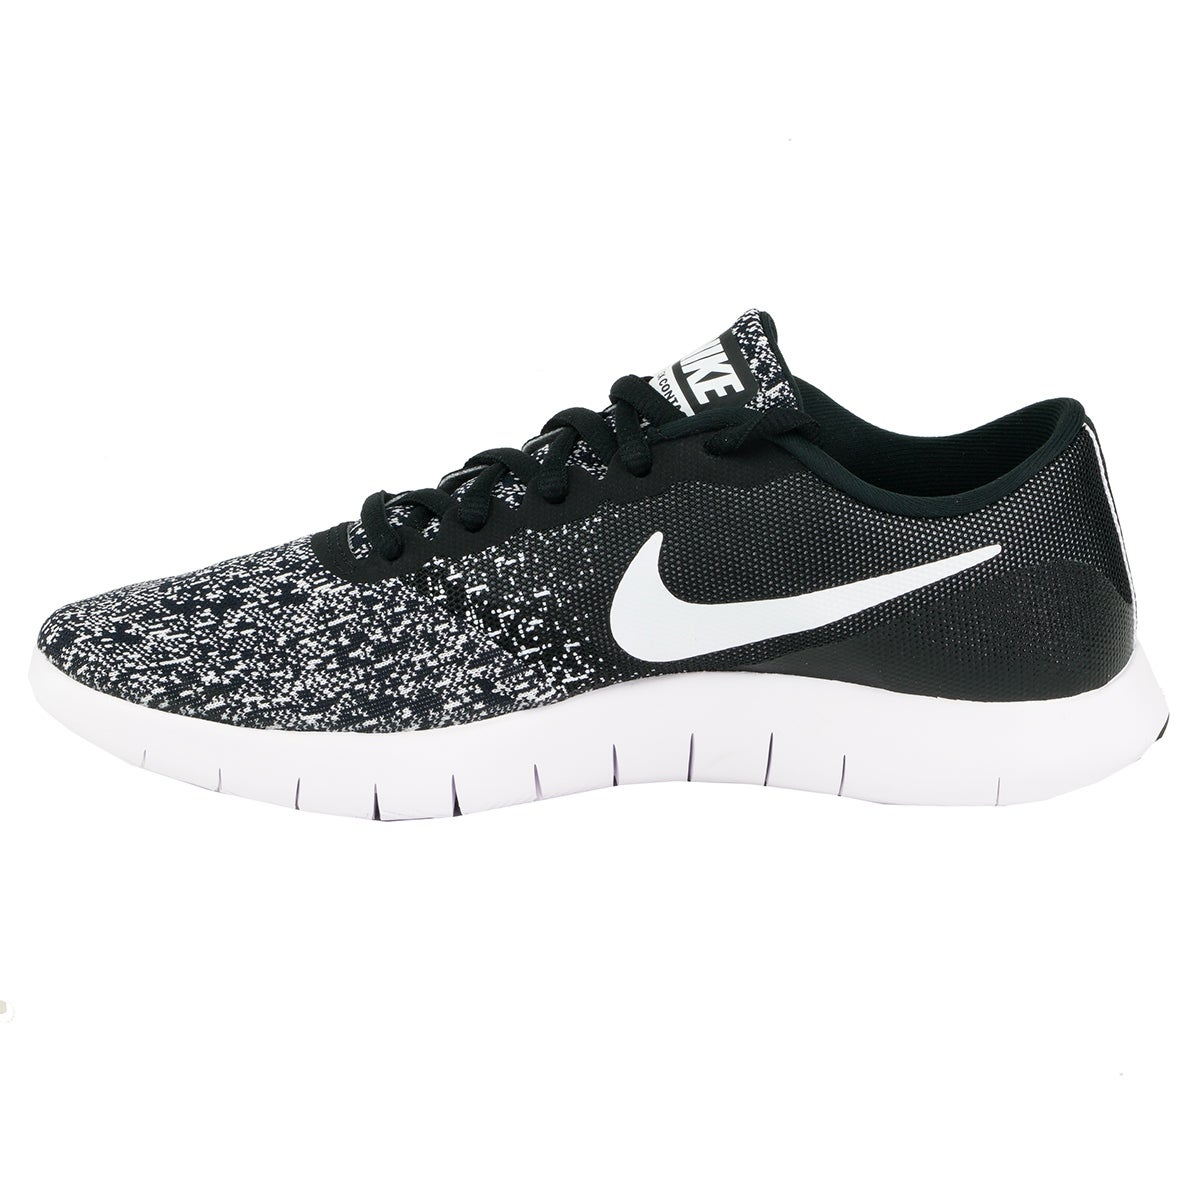 newest 6264e f038e Shop Nike Women s Flex Contact Running Shoes - Free Shipping Today -  Overstock - 23622536